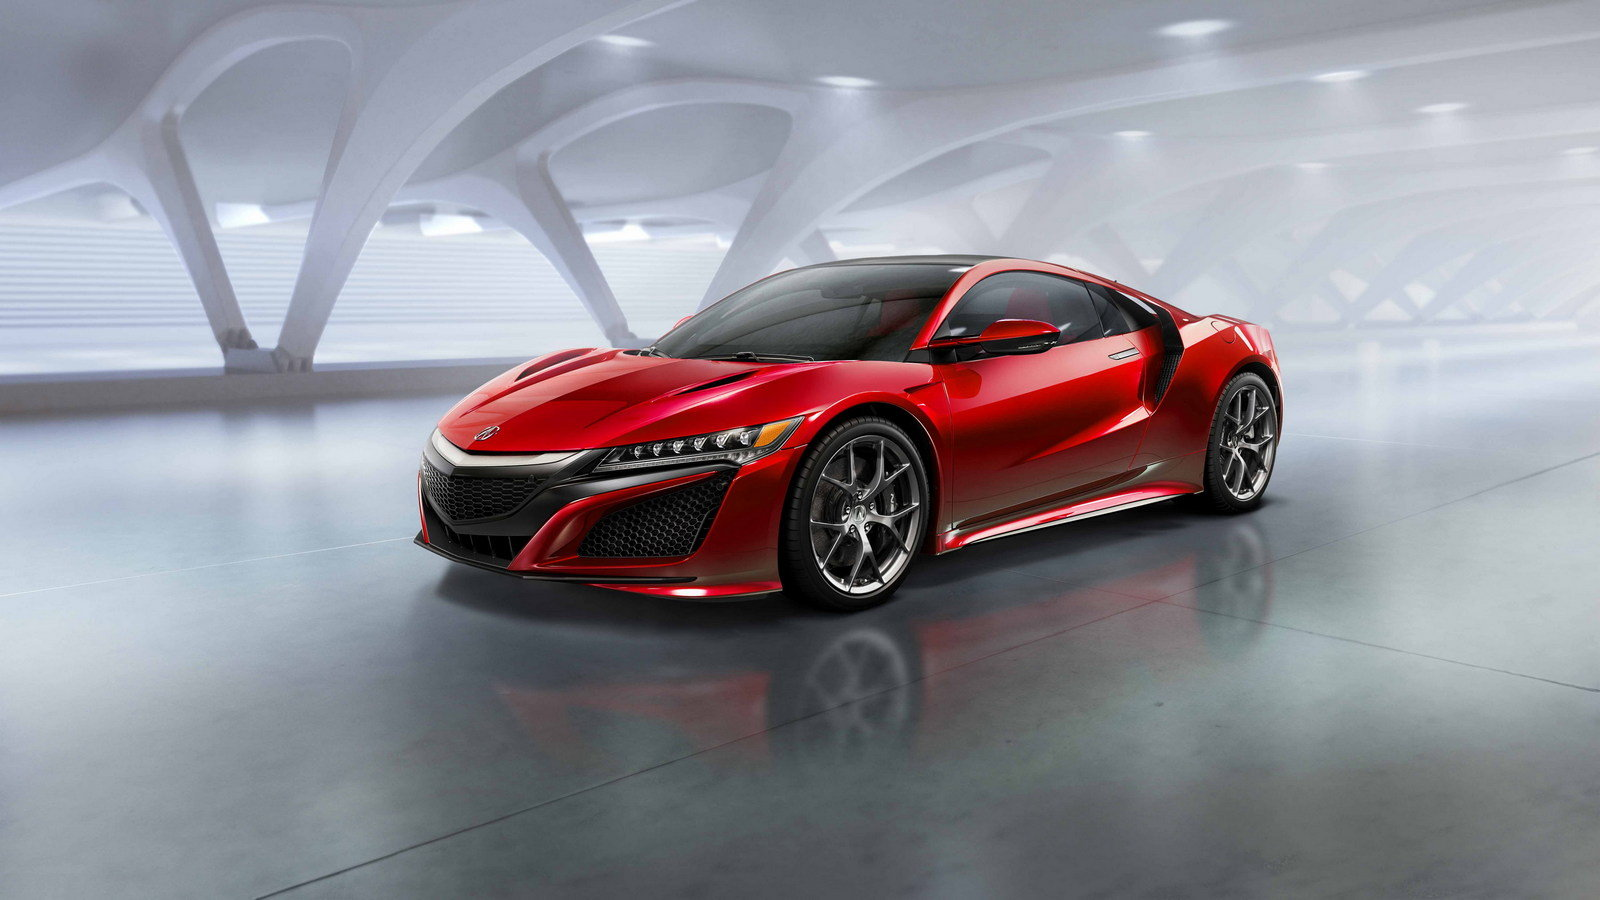 2016 acura nsx picture 610469 car review top speed. Black Bedroom Furniture Sets. Home Design Ideas